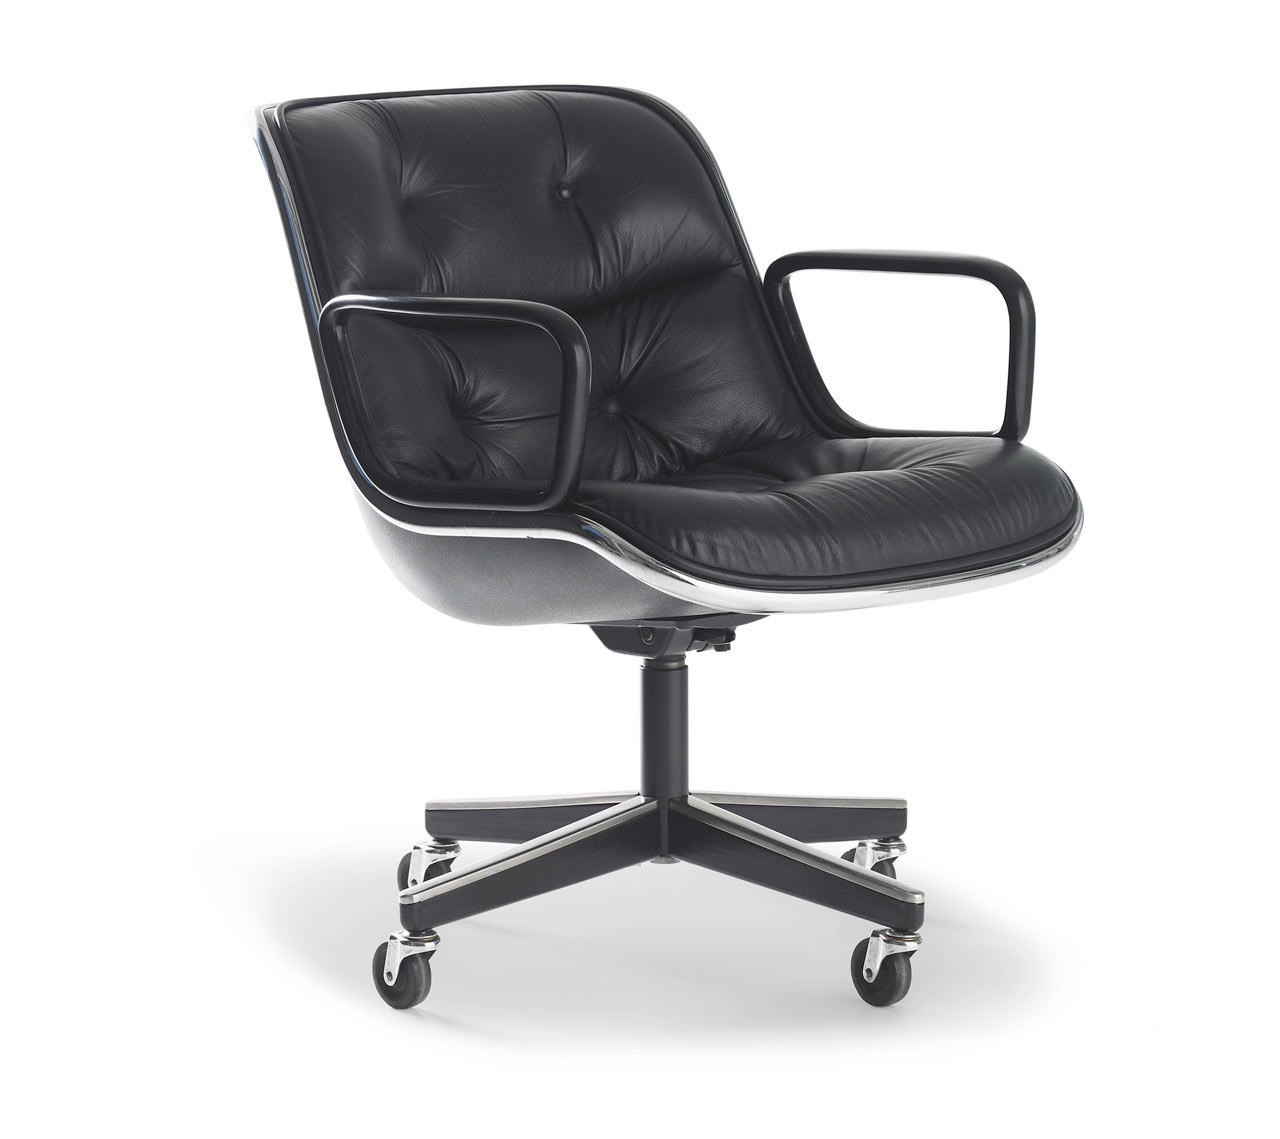 Pollock Executive Chair by Knoll